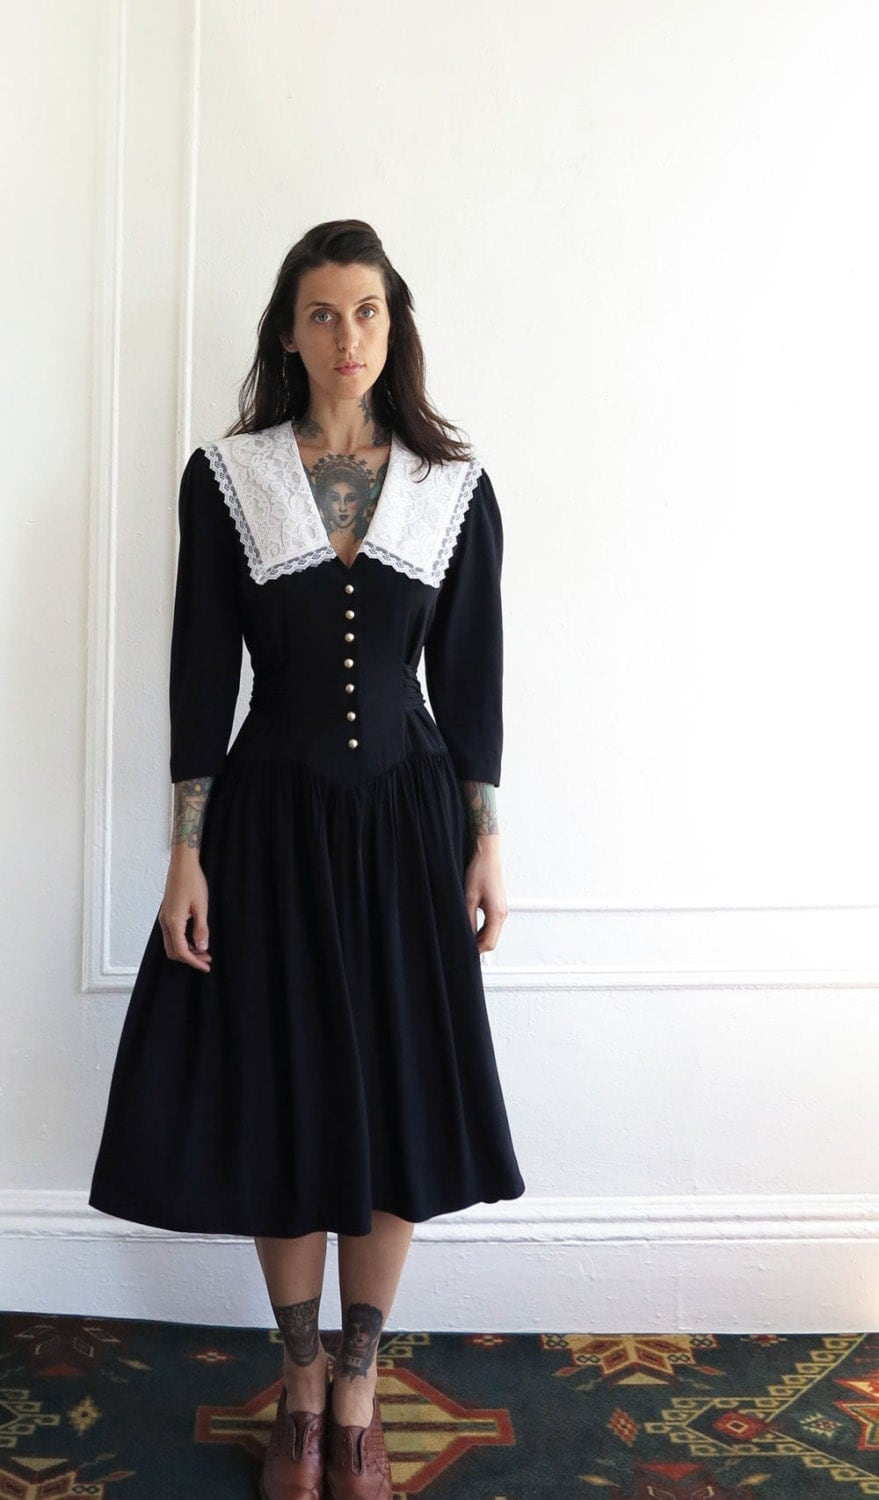 vintage black pilgrim dress// lace collar schoolgirl// small medium - AdieHolly